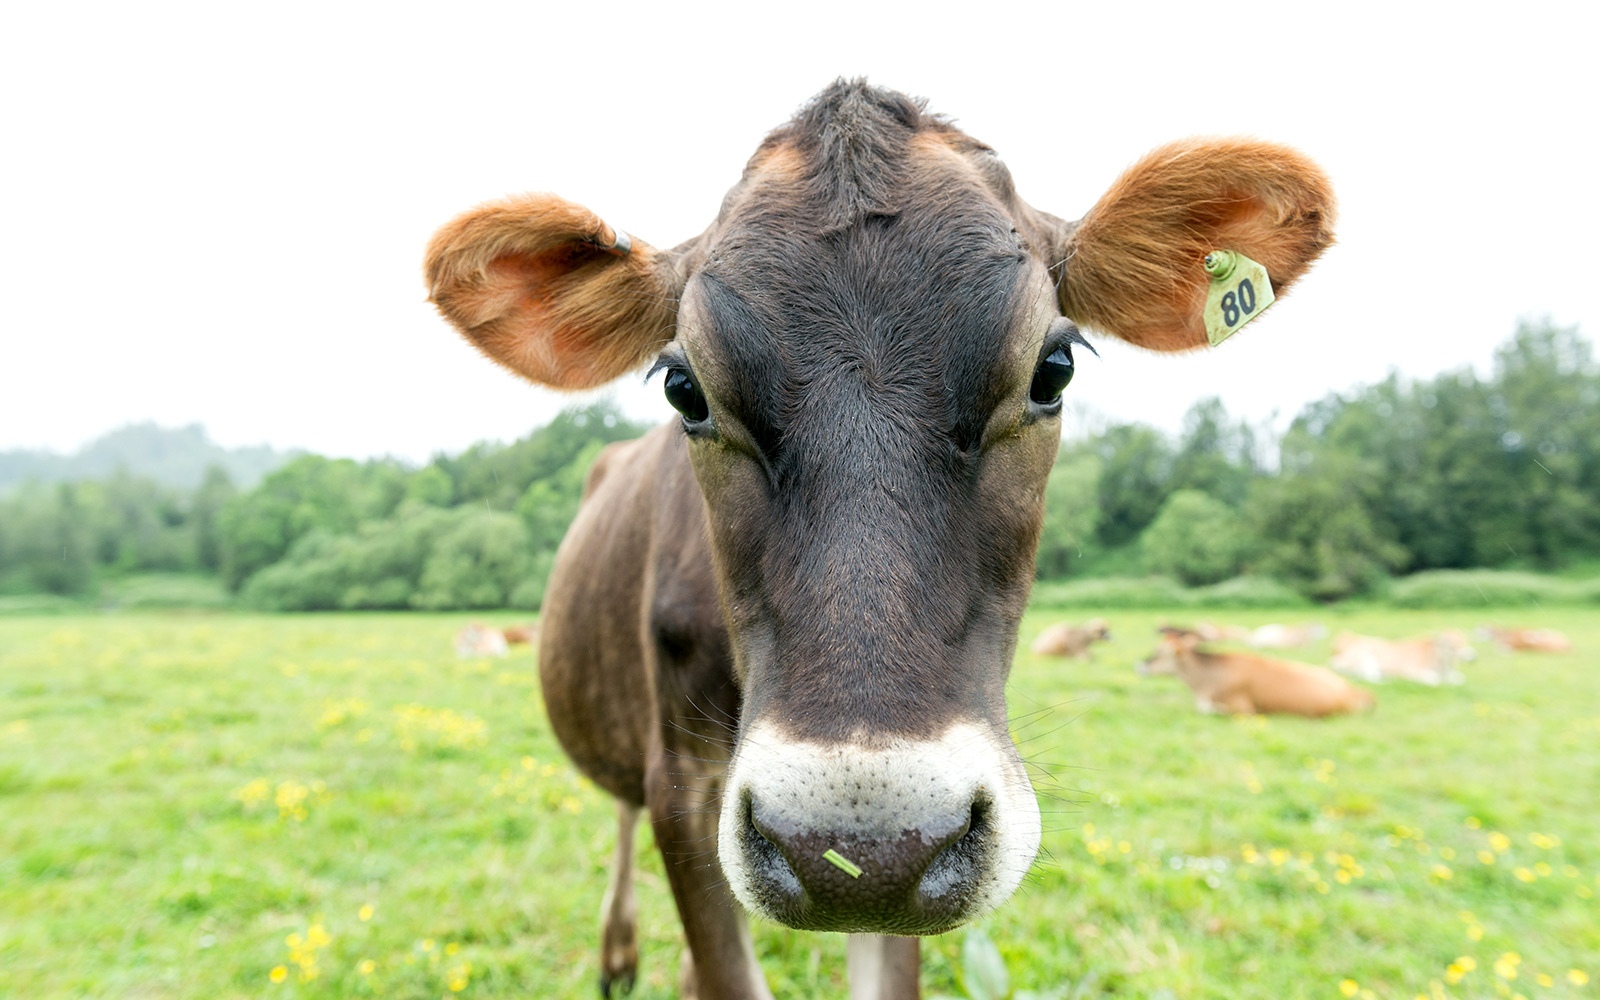 A close-up view of a Jersey cow.